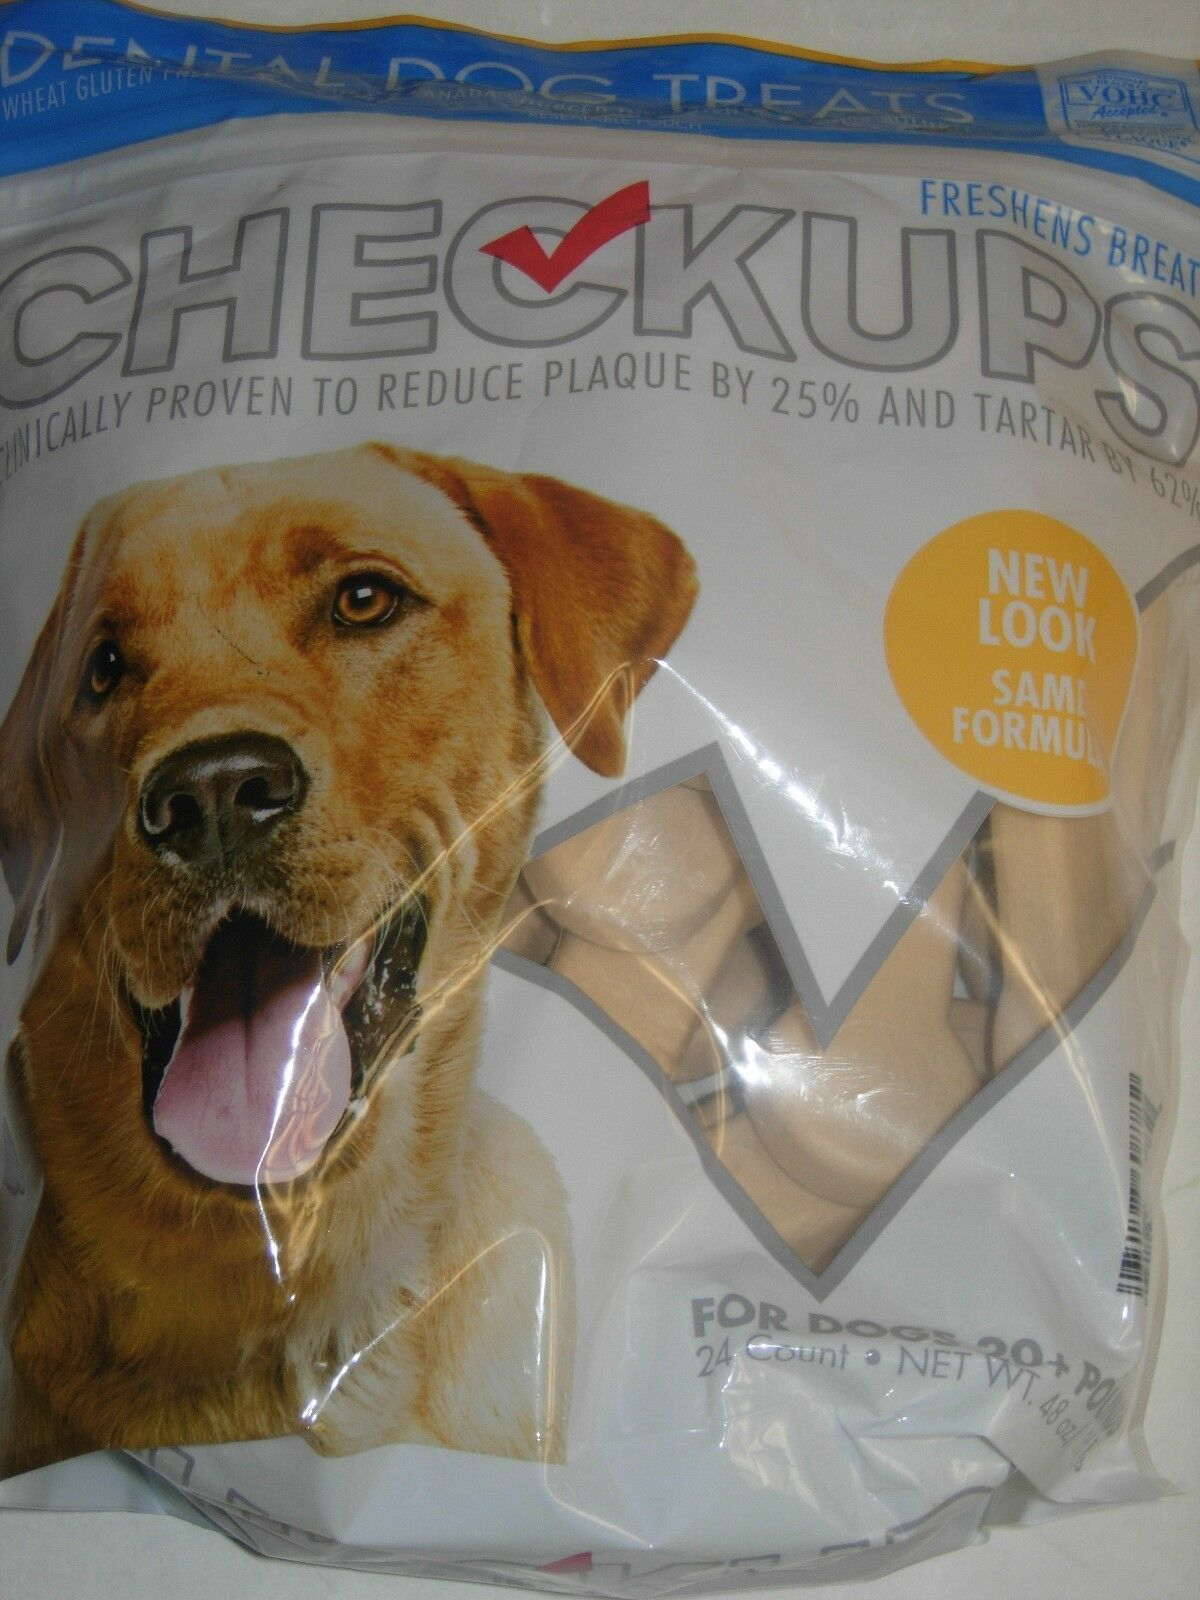 12 LBS of Checkups Dental Dog Treats Reduces Plaque by 25% 20 lb or Larger Dogs